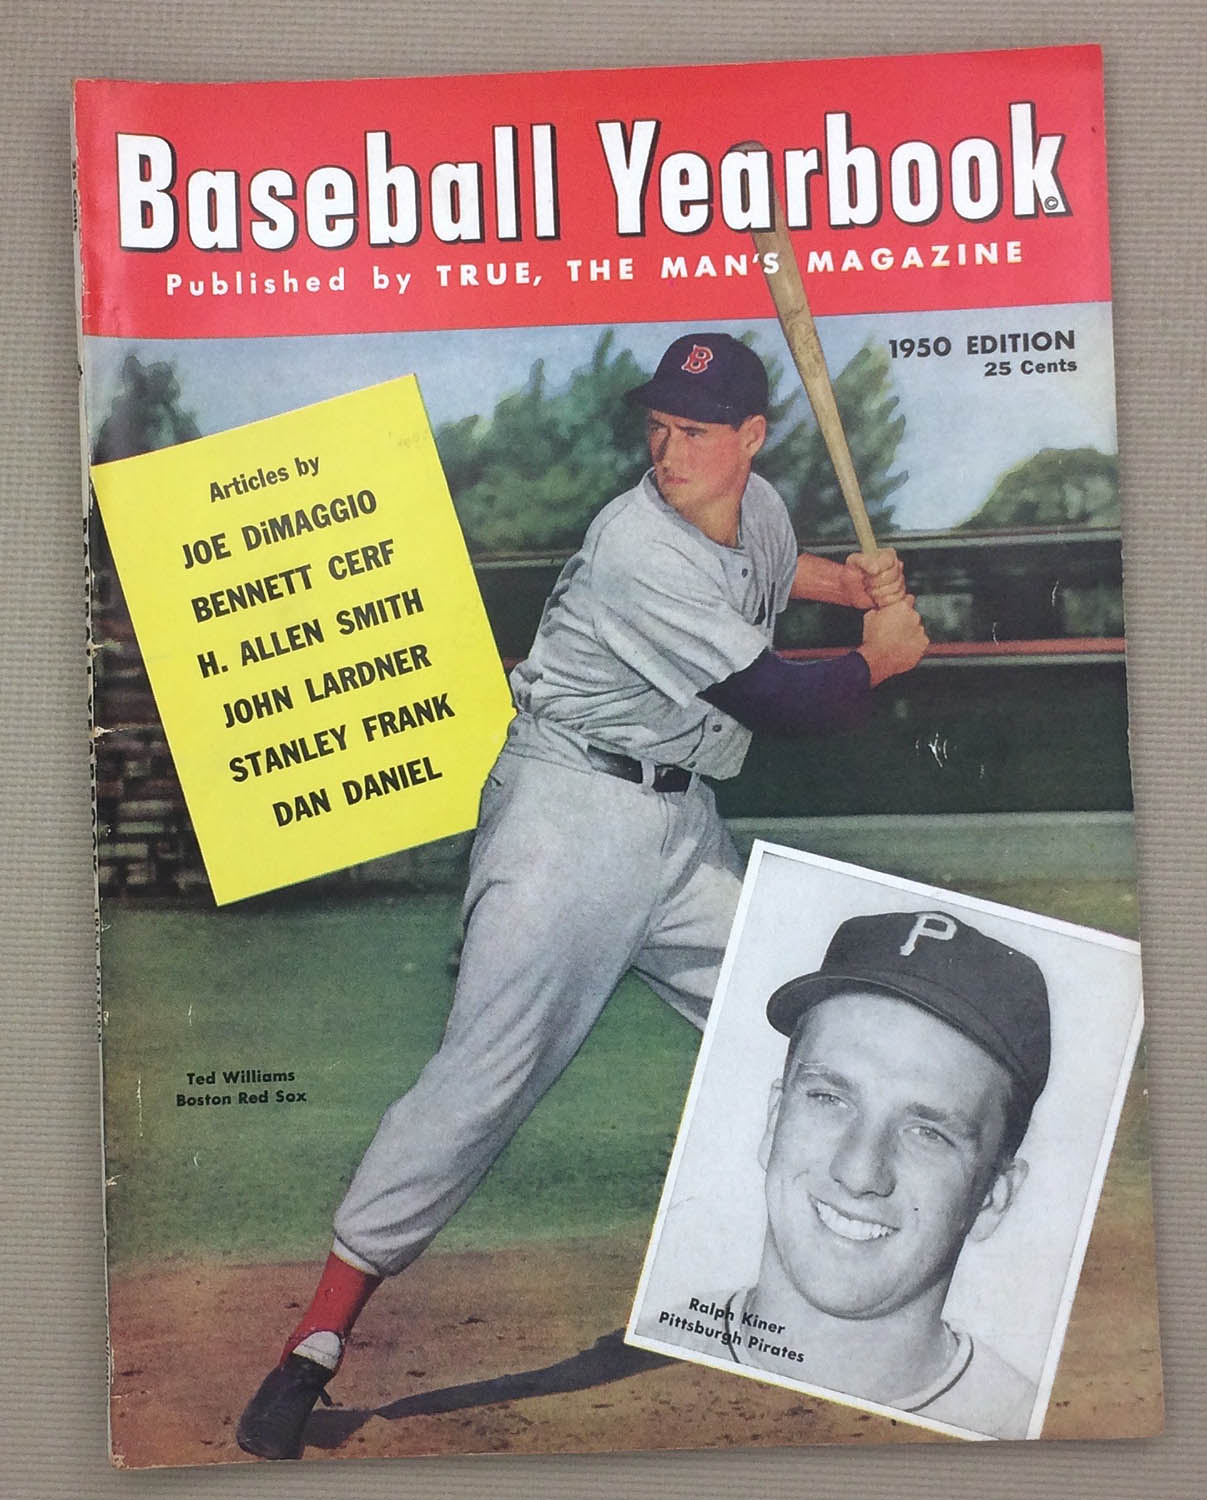 1950 Baseball Yearbook Magazine